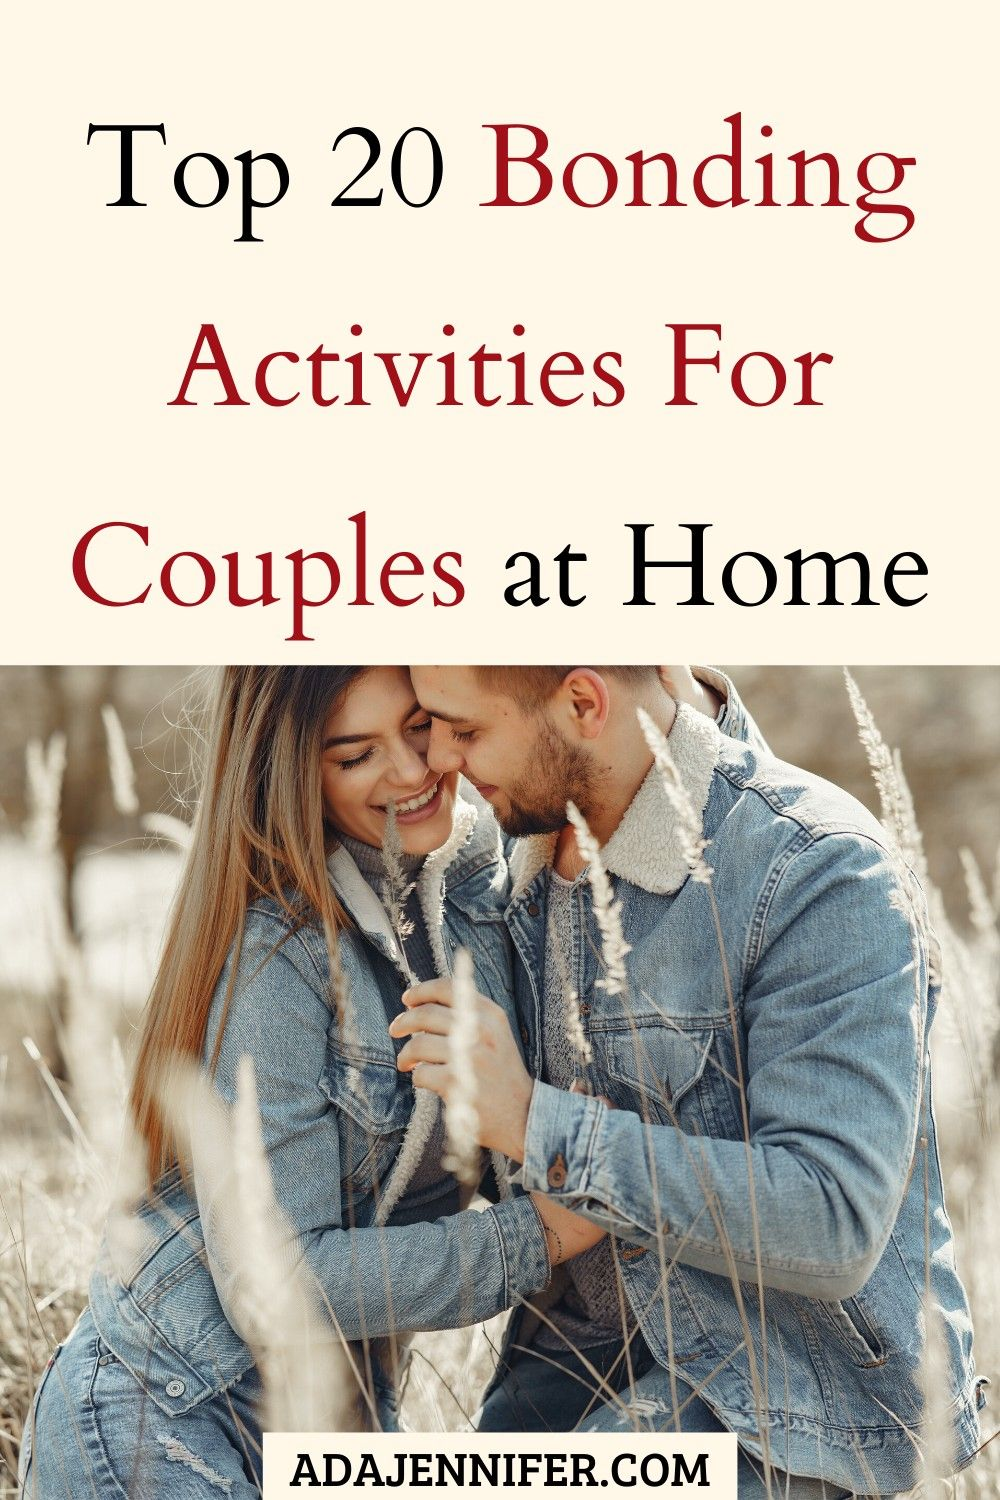 Top 20 Bonding Activities For Couples At Home Fun Couple Activities Couple Activities Things To Do With Your Boyfriend